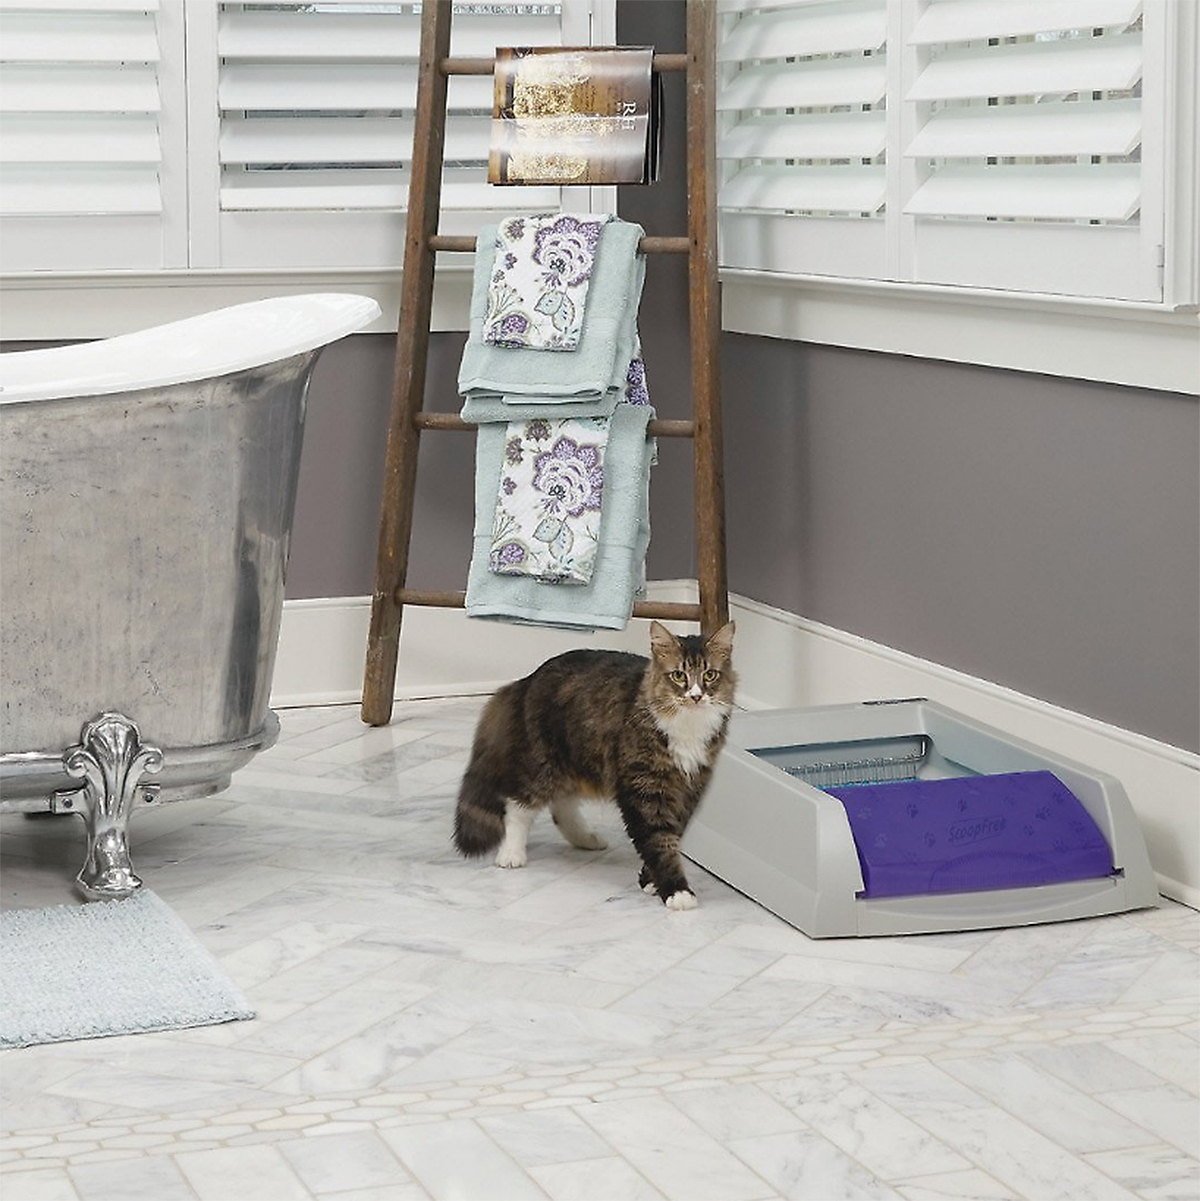 PetSafe ScoopFree Original Automatic Cat Litter Box